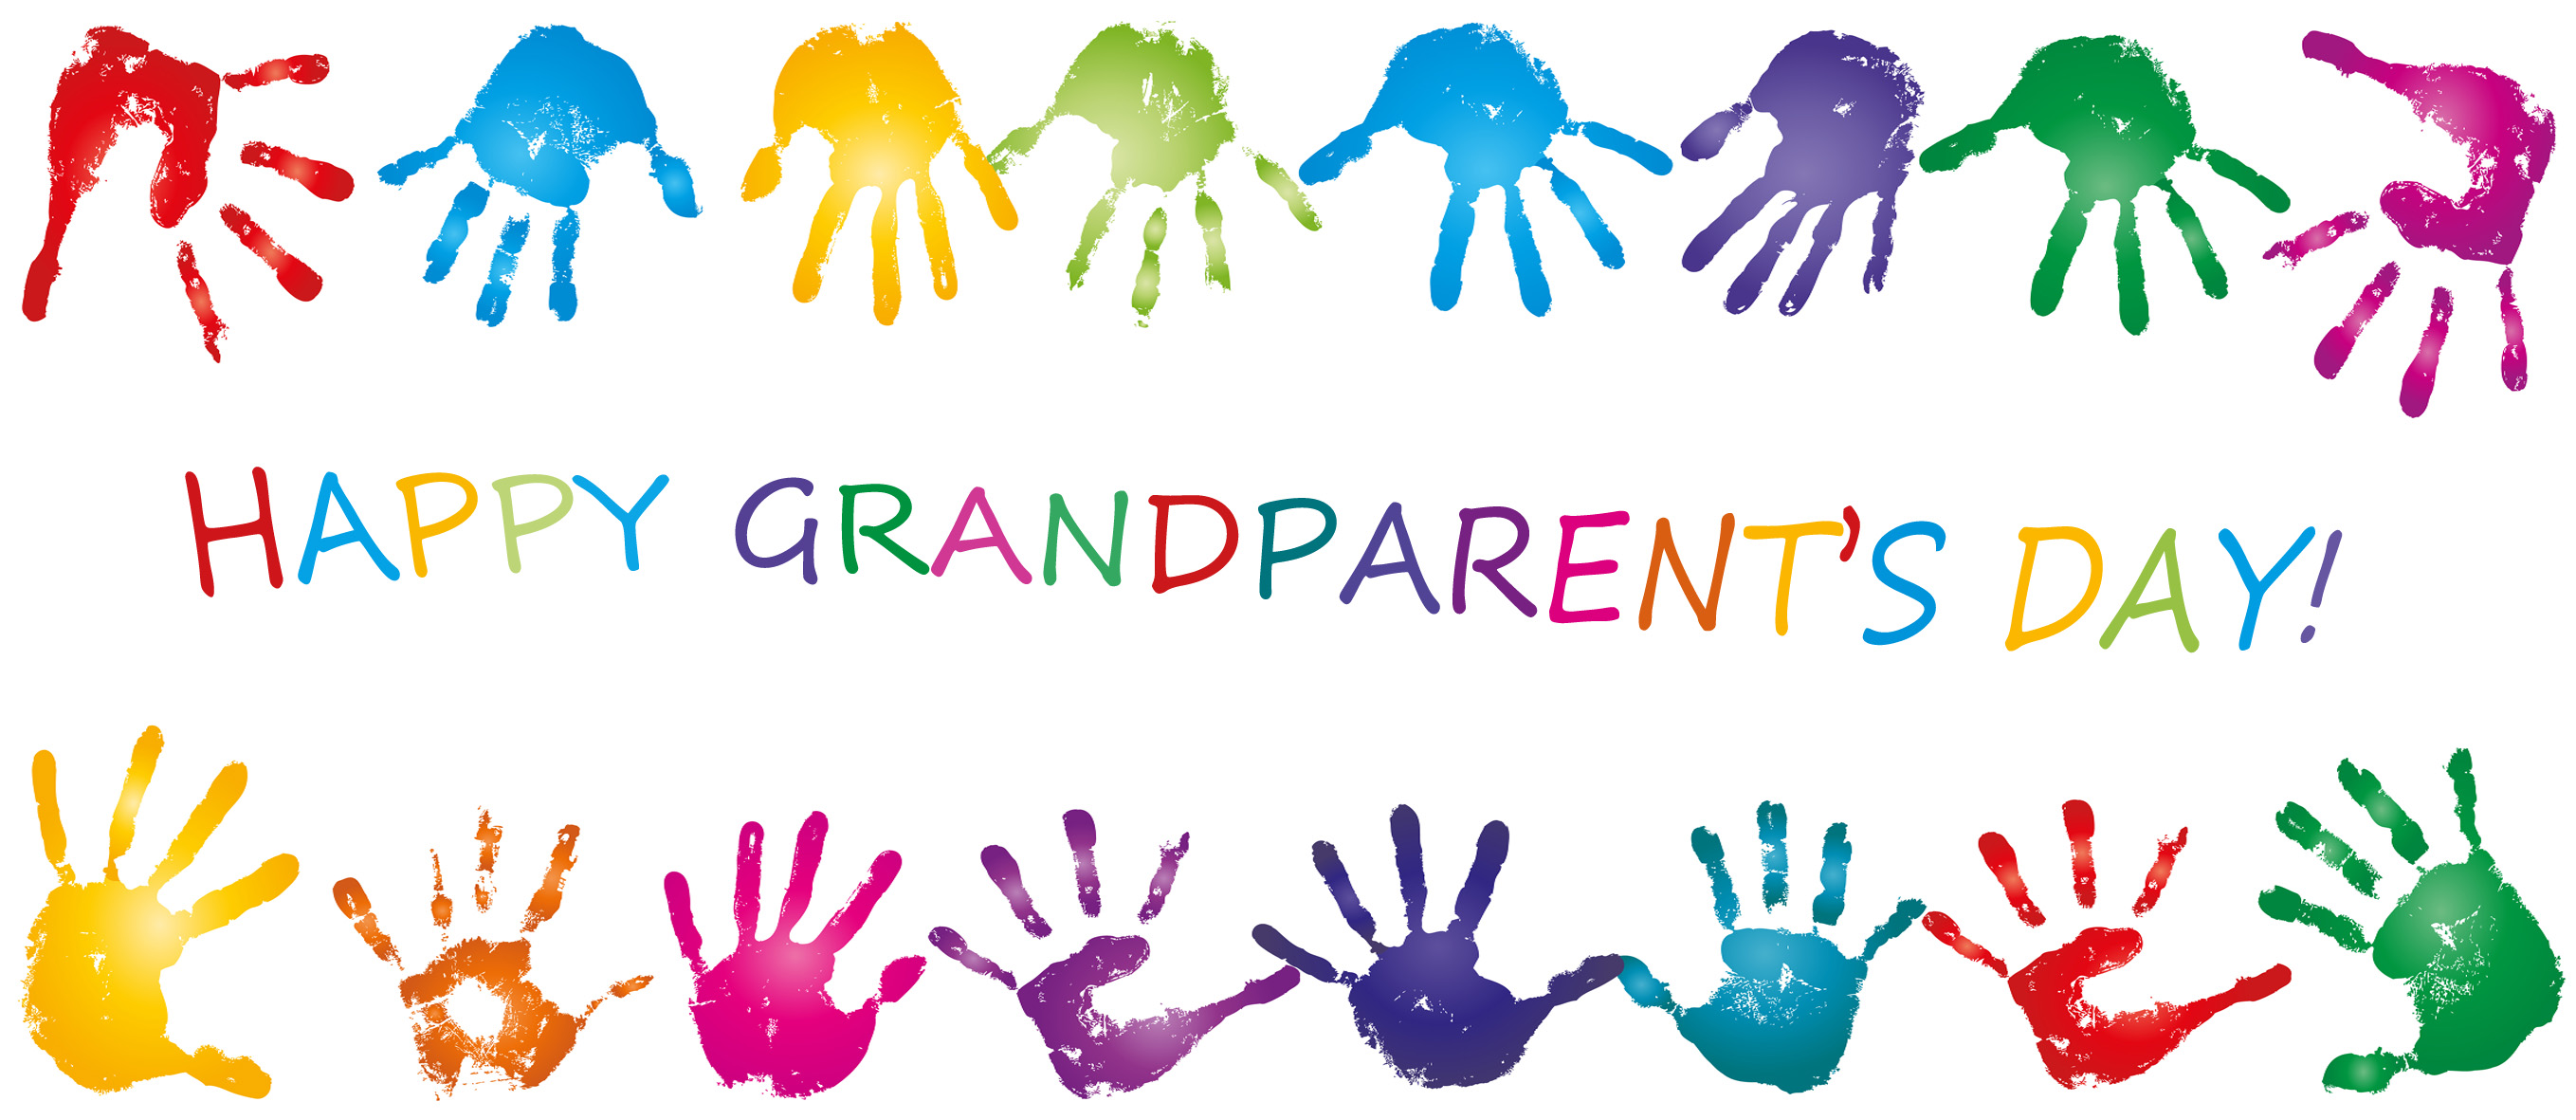 Download Happy Grandparent's Day Images & Pictures for WhatsApp & Facebook